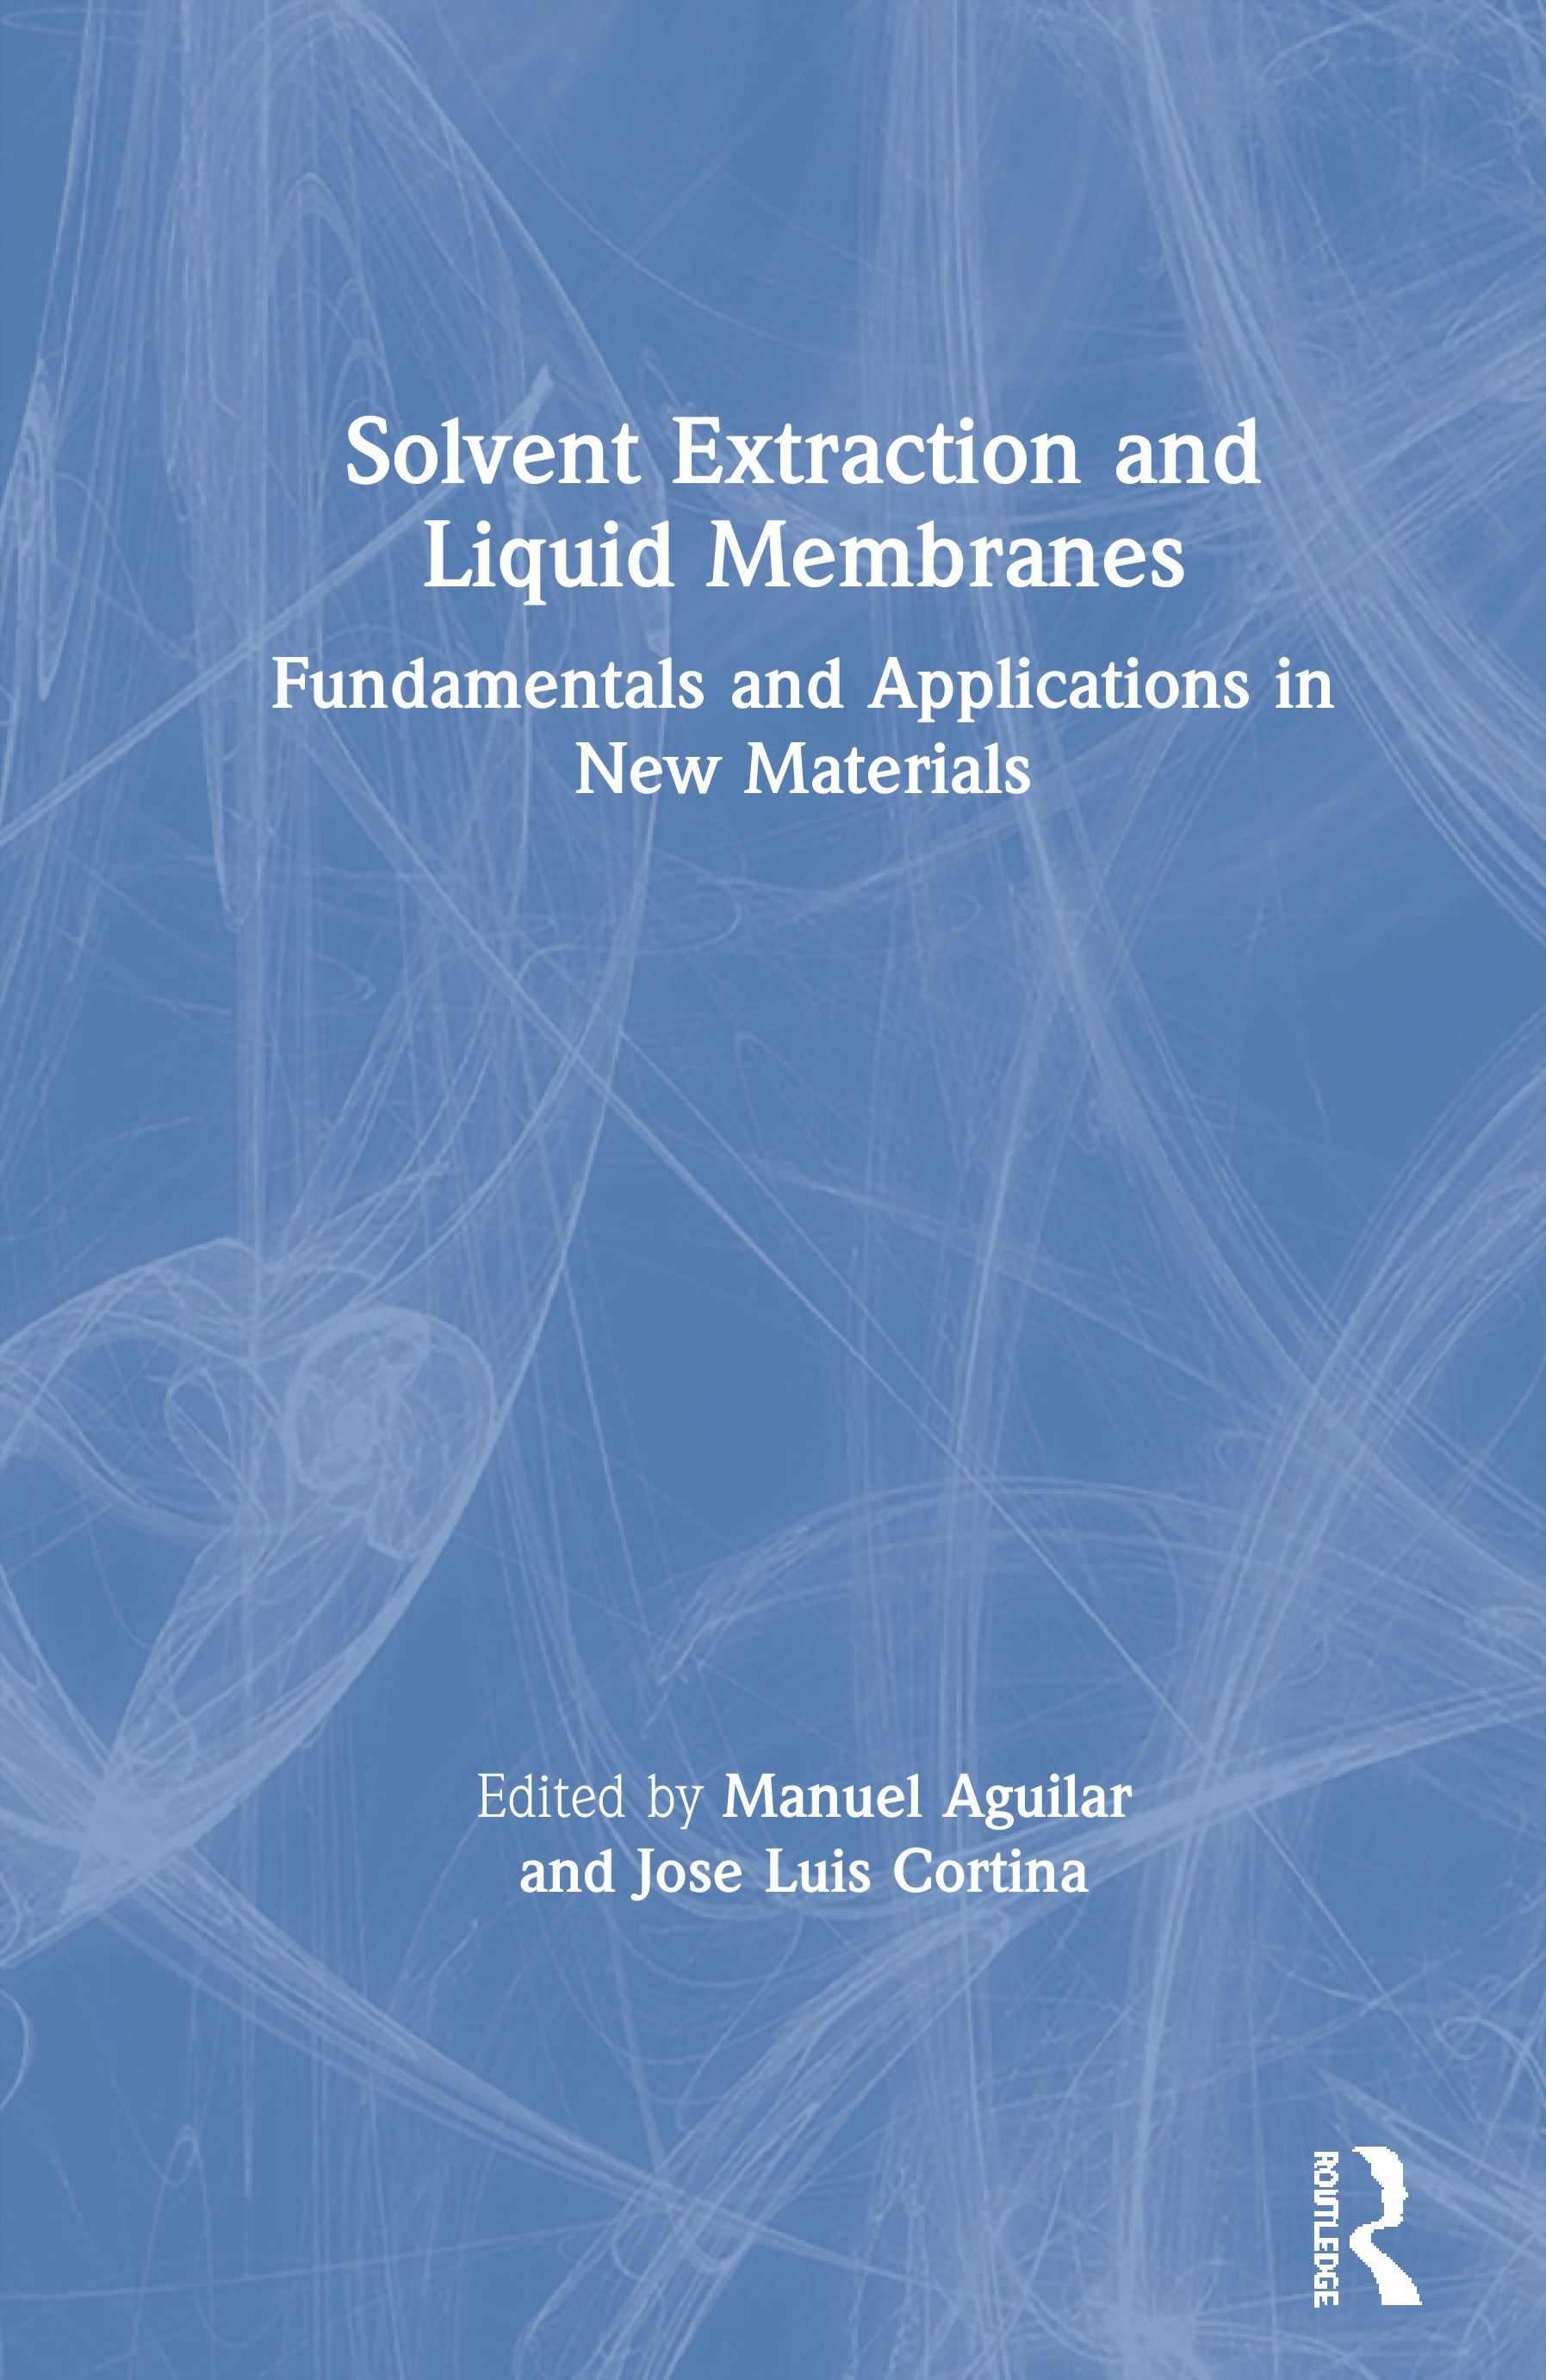 Solvent Extraction and Liquid Membranes: Fundamentals and Applications in New Materials, 1st Edition (Hardback) book cover